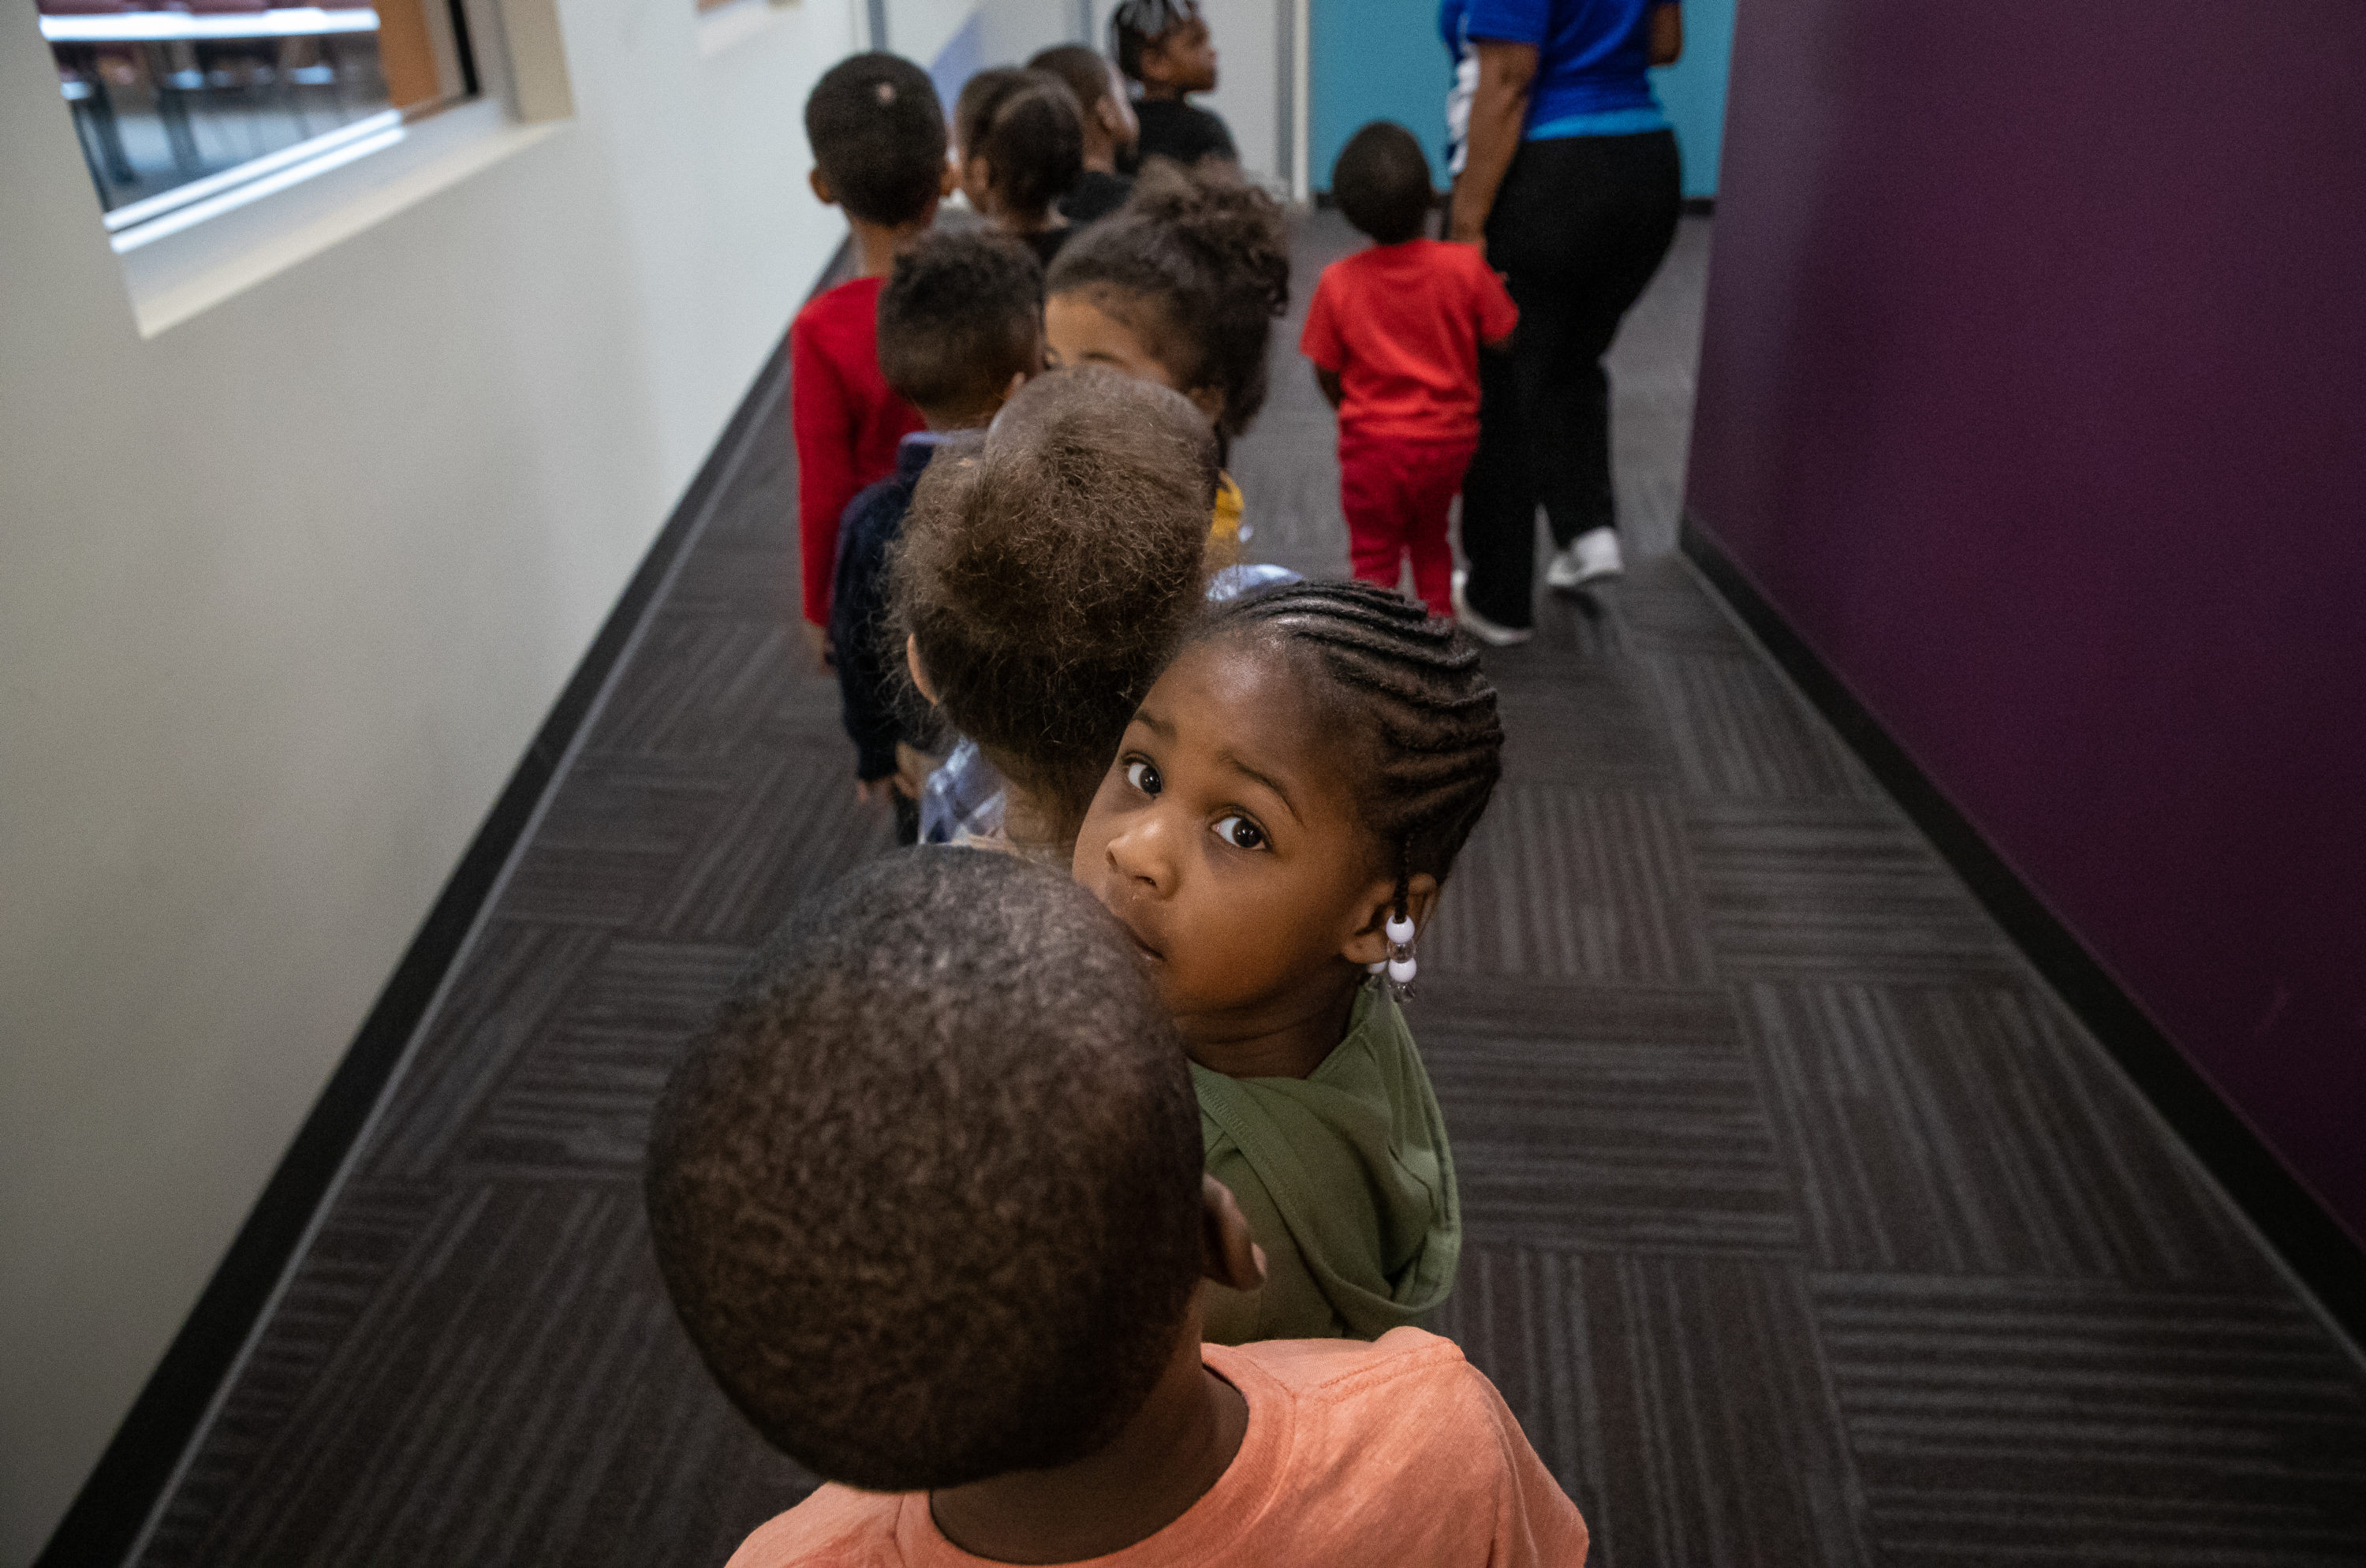 Preschool programs in Detroit have some of the strictest quality standards in the country.